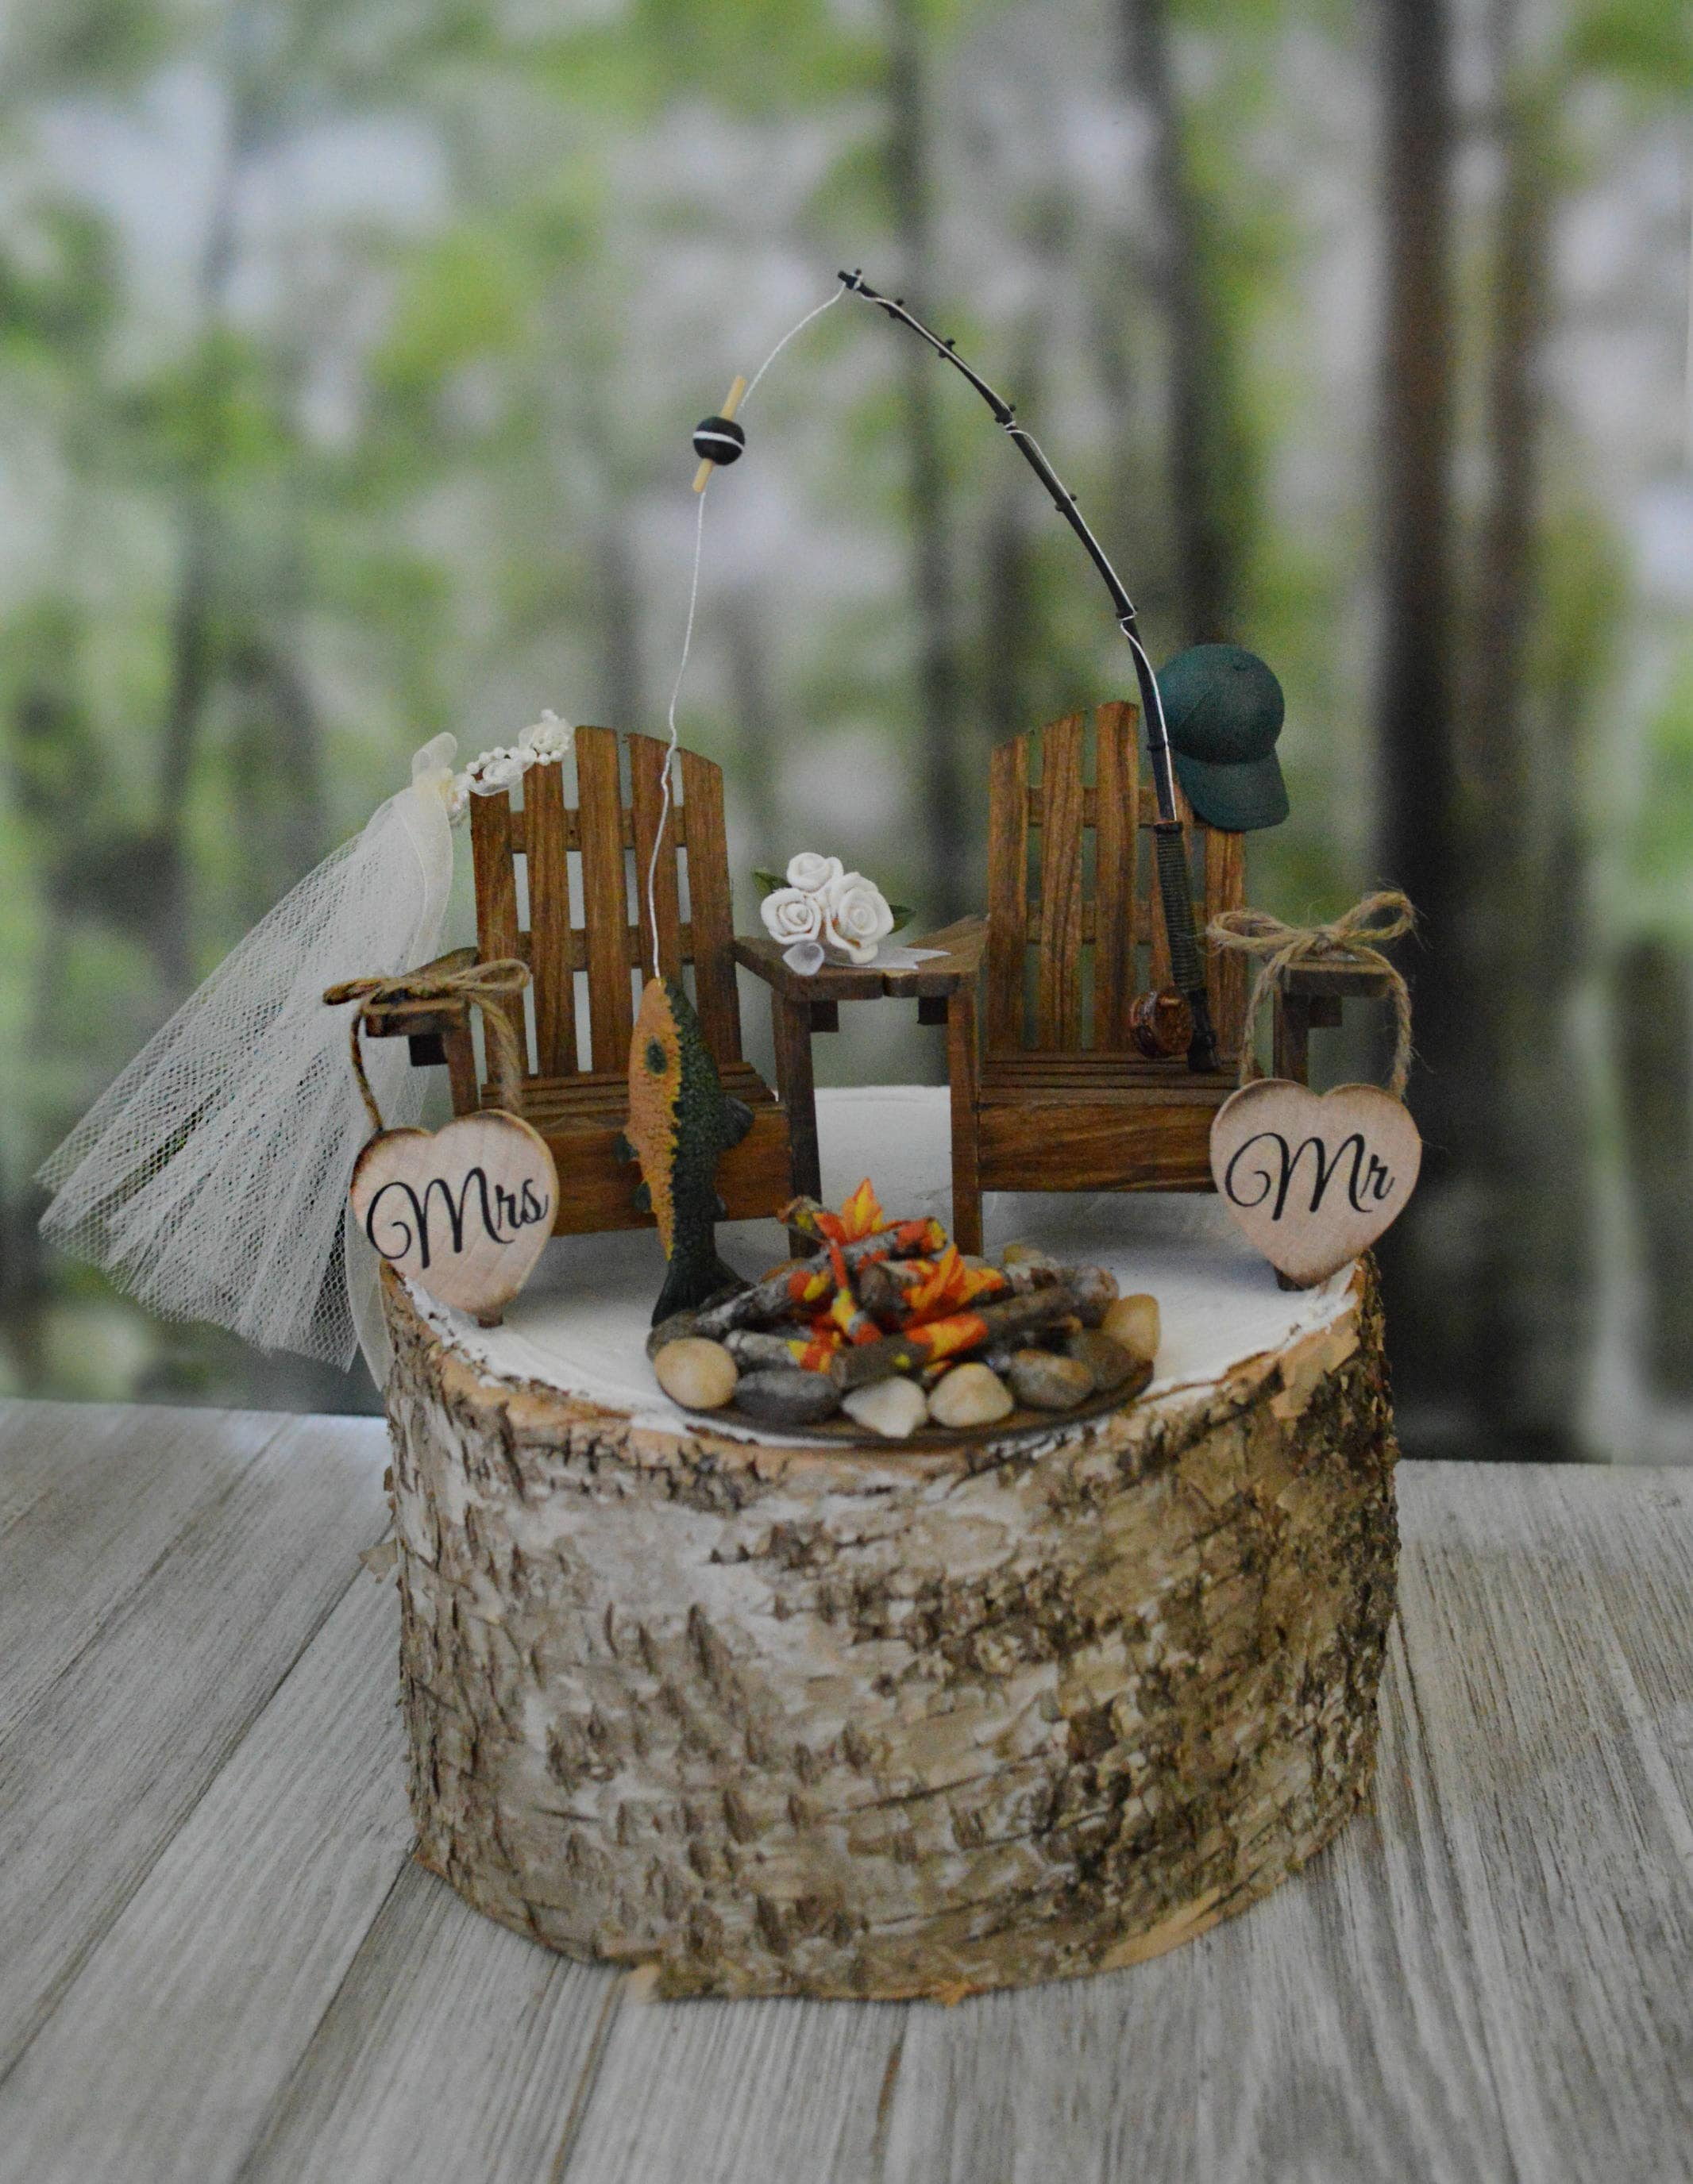 Fishing pole fishing themed wedding cake topper camping